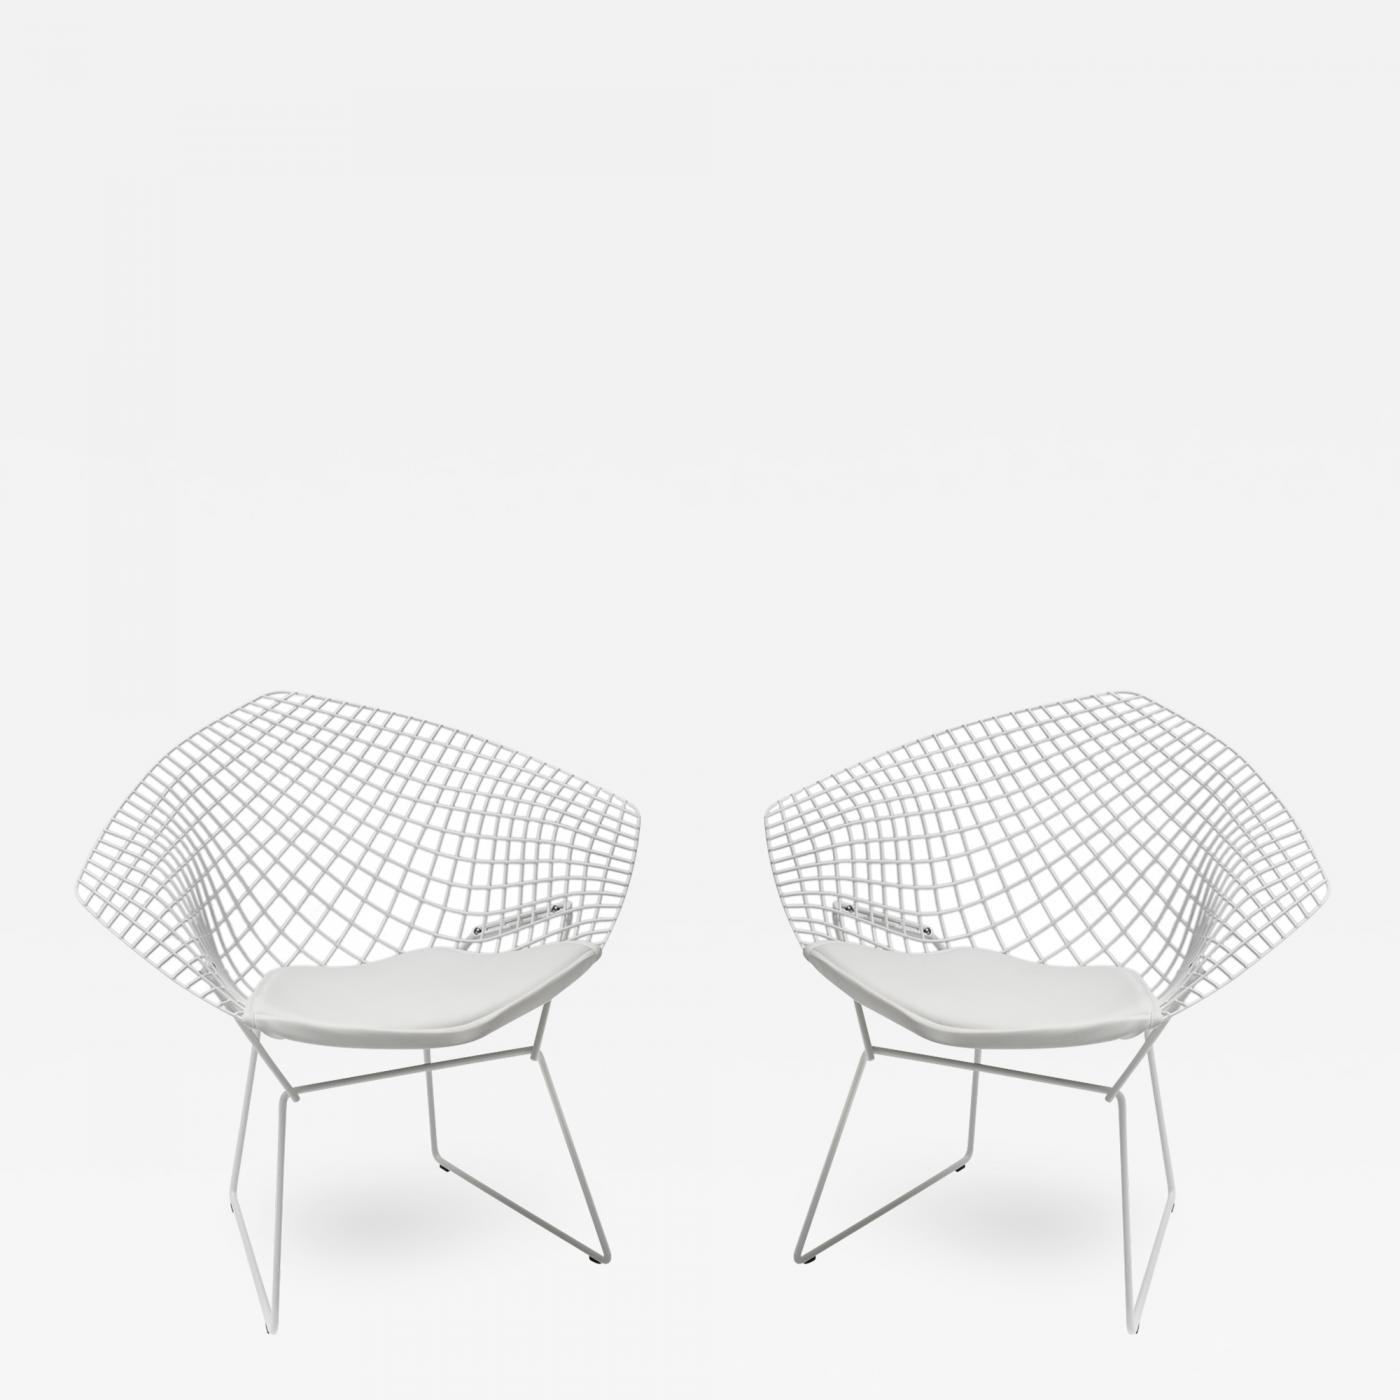 Brilliant Harry Bertoia Pair Of Diamond Lounge Chairs By Harry Bertoia For Knoll Alphanode Cool Chair Designs And Ideas Alphanodeonline